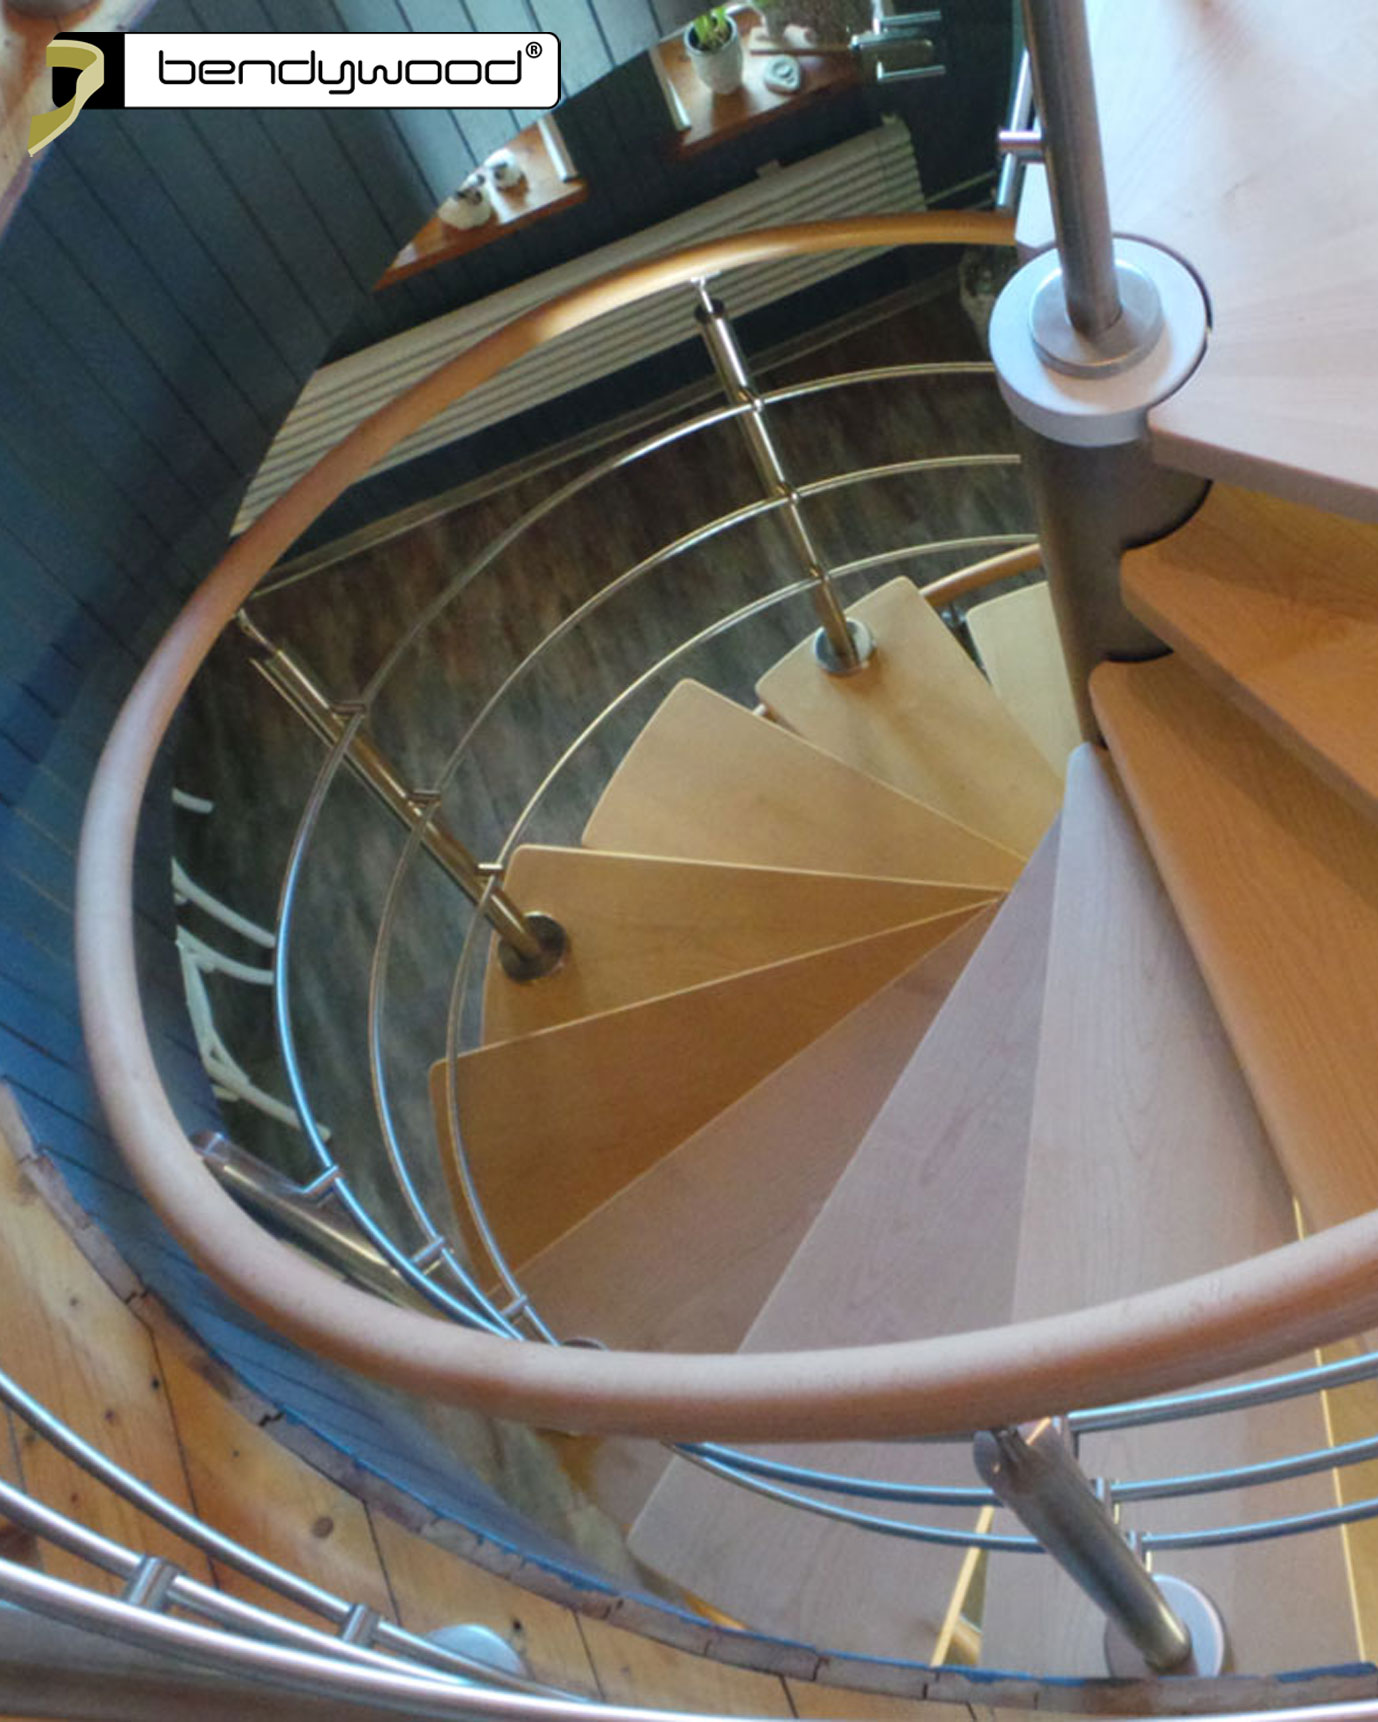 Bent wooden handrails 42mm in Bendywood® beech for spiral staircase